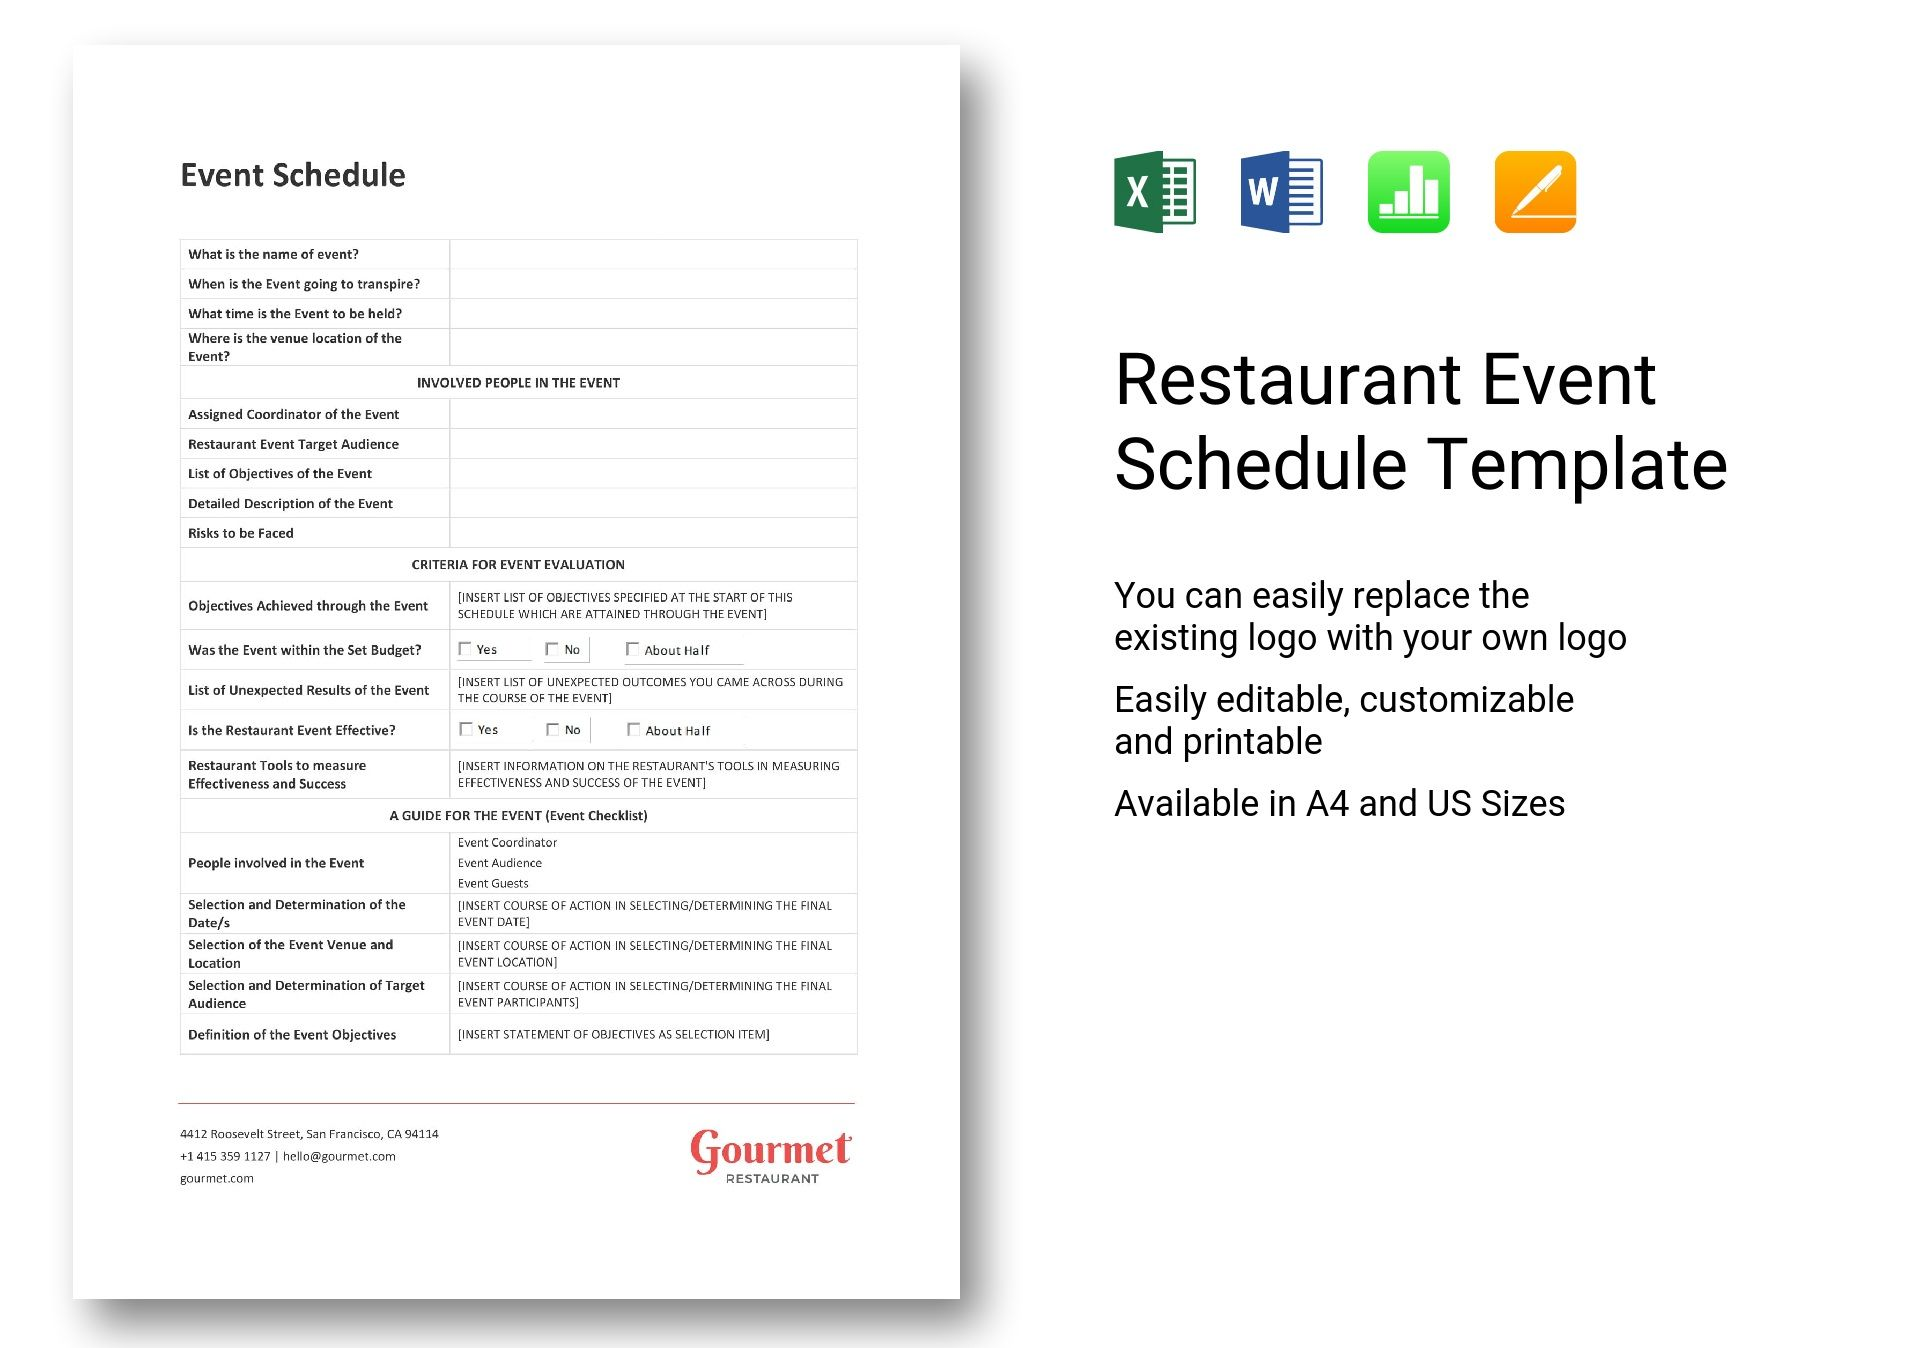 Restaurant work schedule template employee weekly printable, free excel employee scheduling template when i work, restaurant shift schedule template,. Restaurant Event Schedule Template In Word Excel Apple Pages Numbers